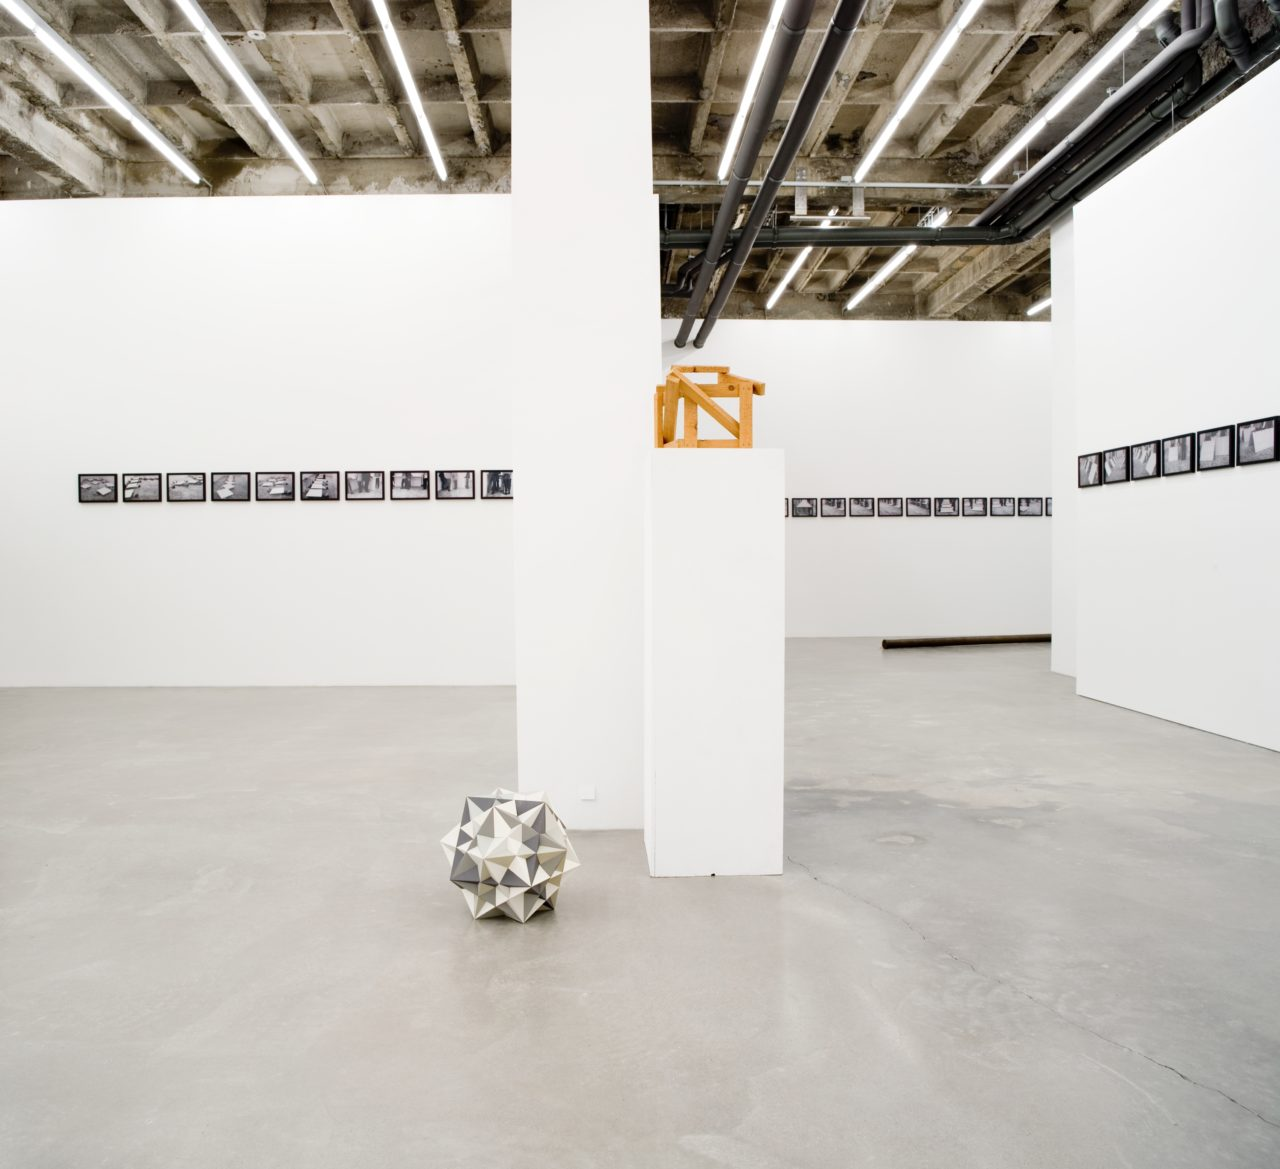 It's about sculpture, Installation view